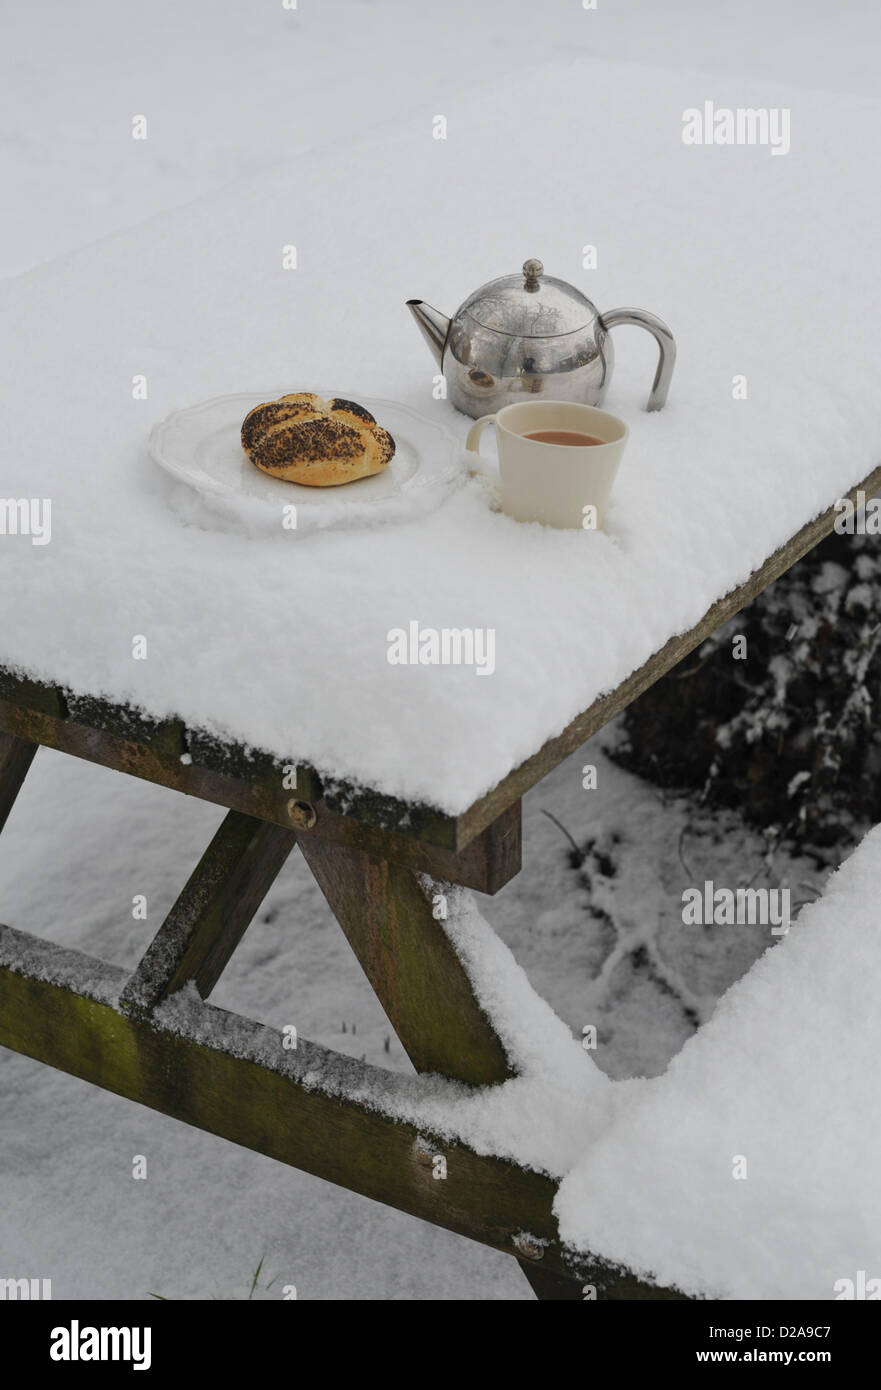 Bathford, UK. 18th January 2013. Britain awakes to a blanket of snow.  Bathford, Friday January 18th 2013. Credit: - Stock Image